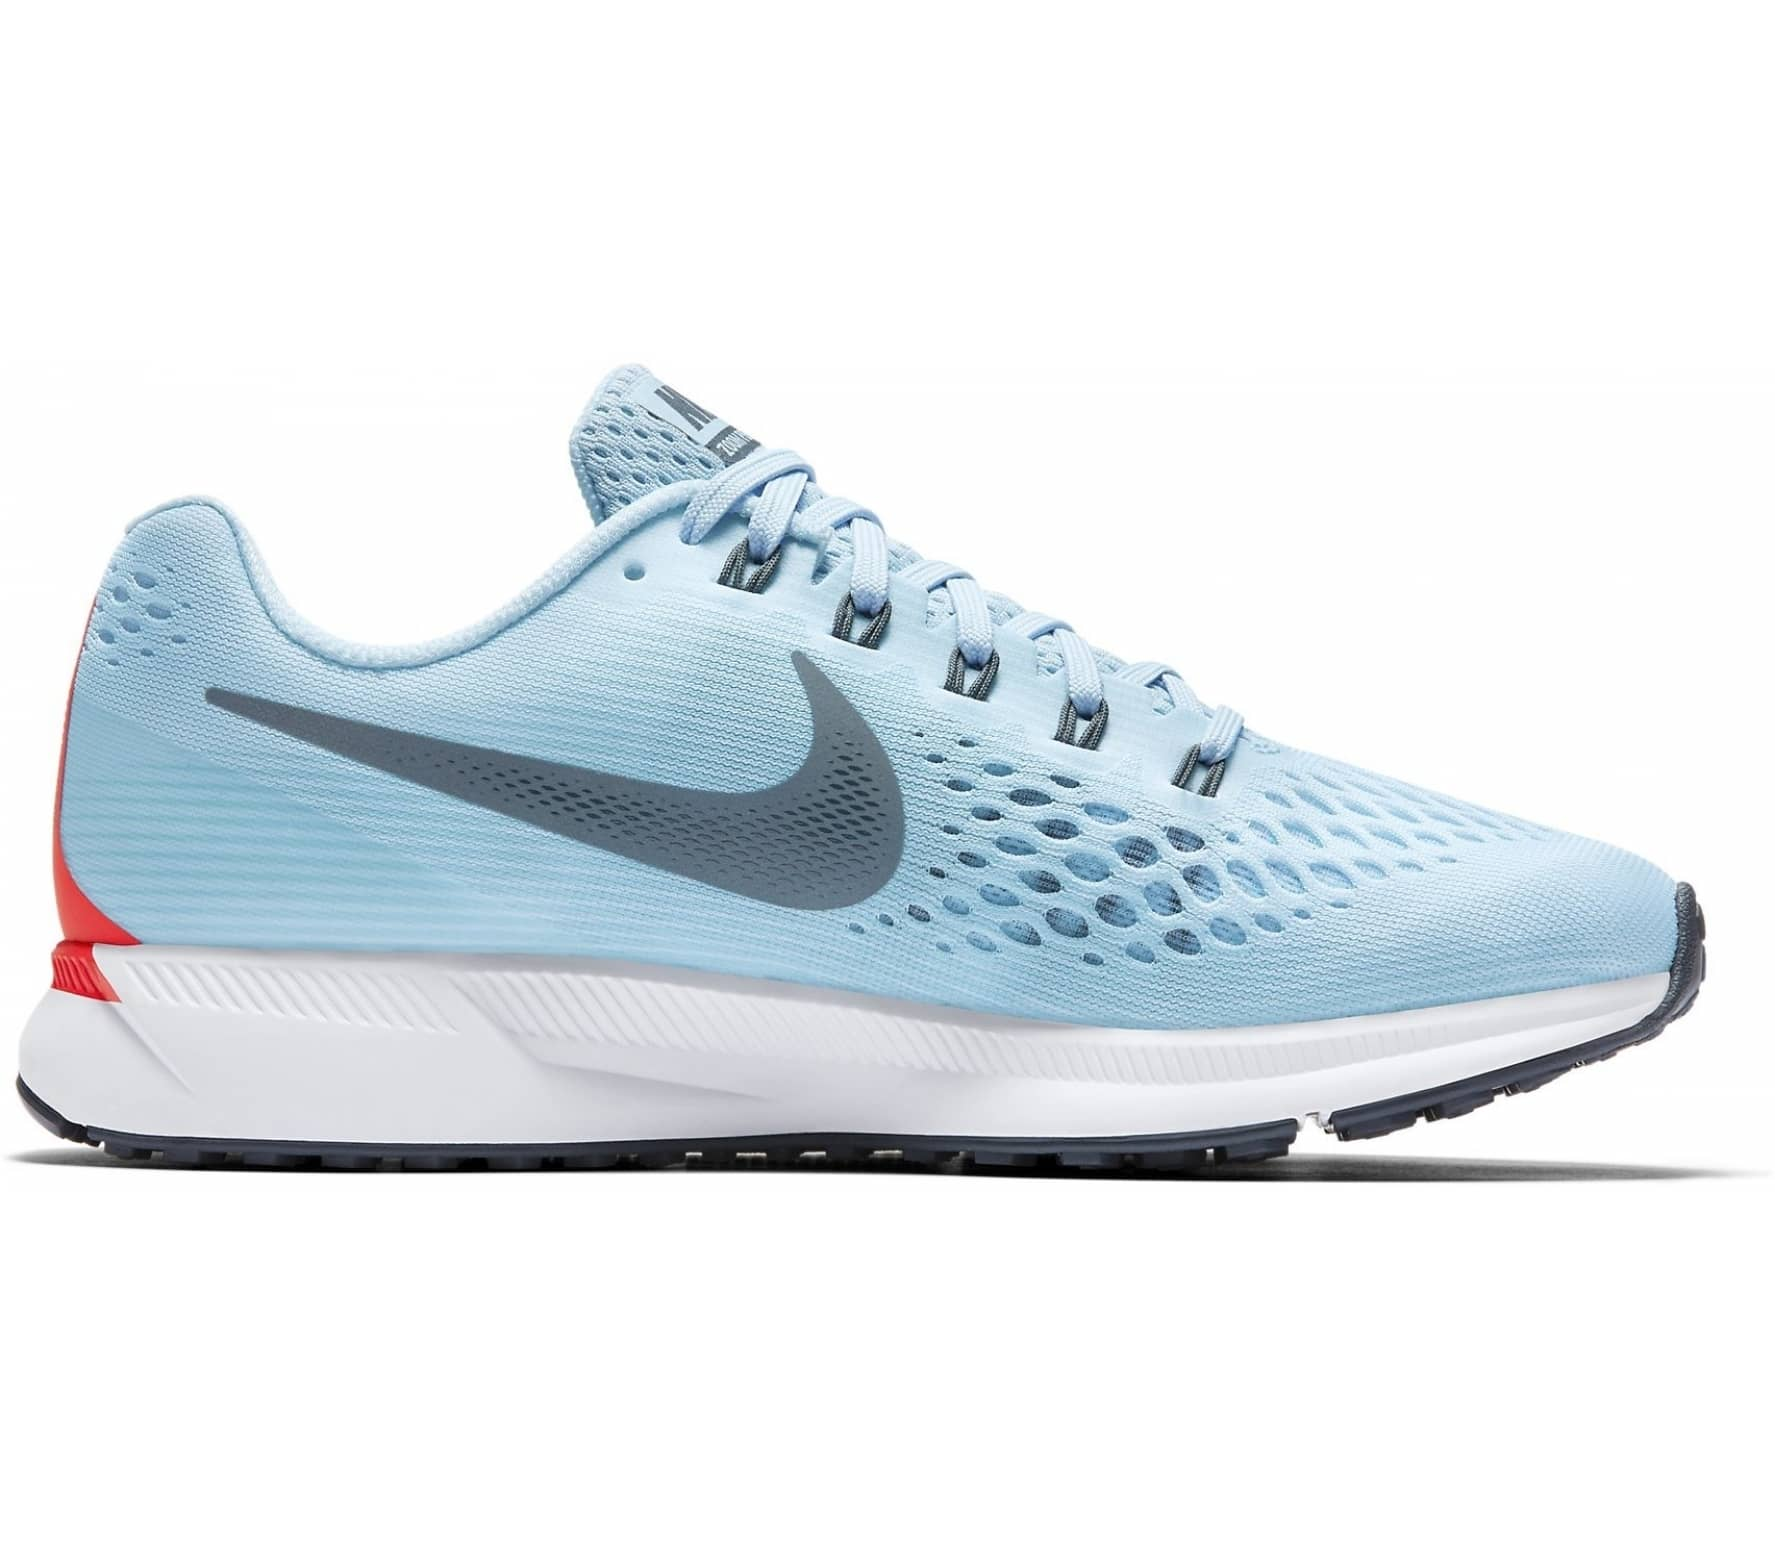 purchase cheap f7d7d bec52 Nike - Air Zoom Pegasus 34 zapatillas de running para mujer (azul claro)